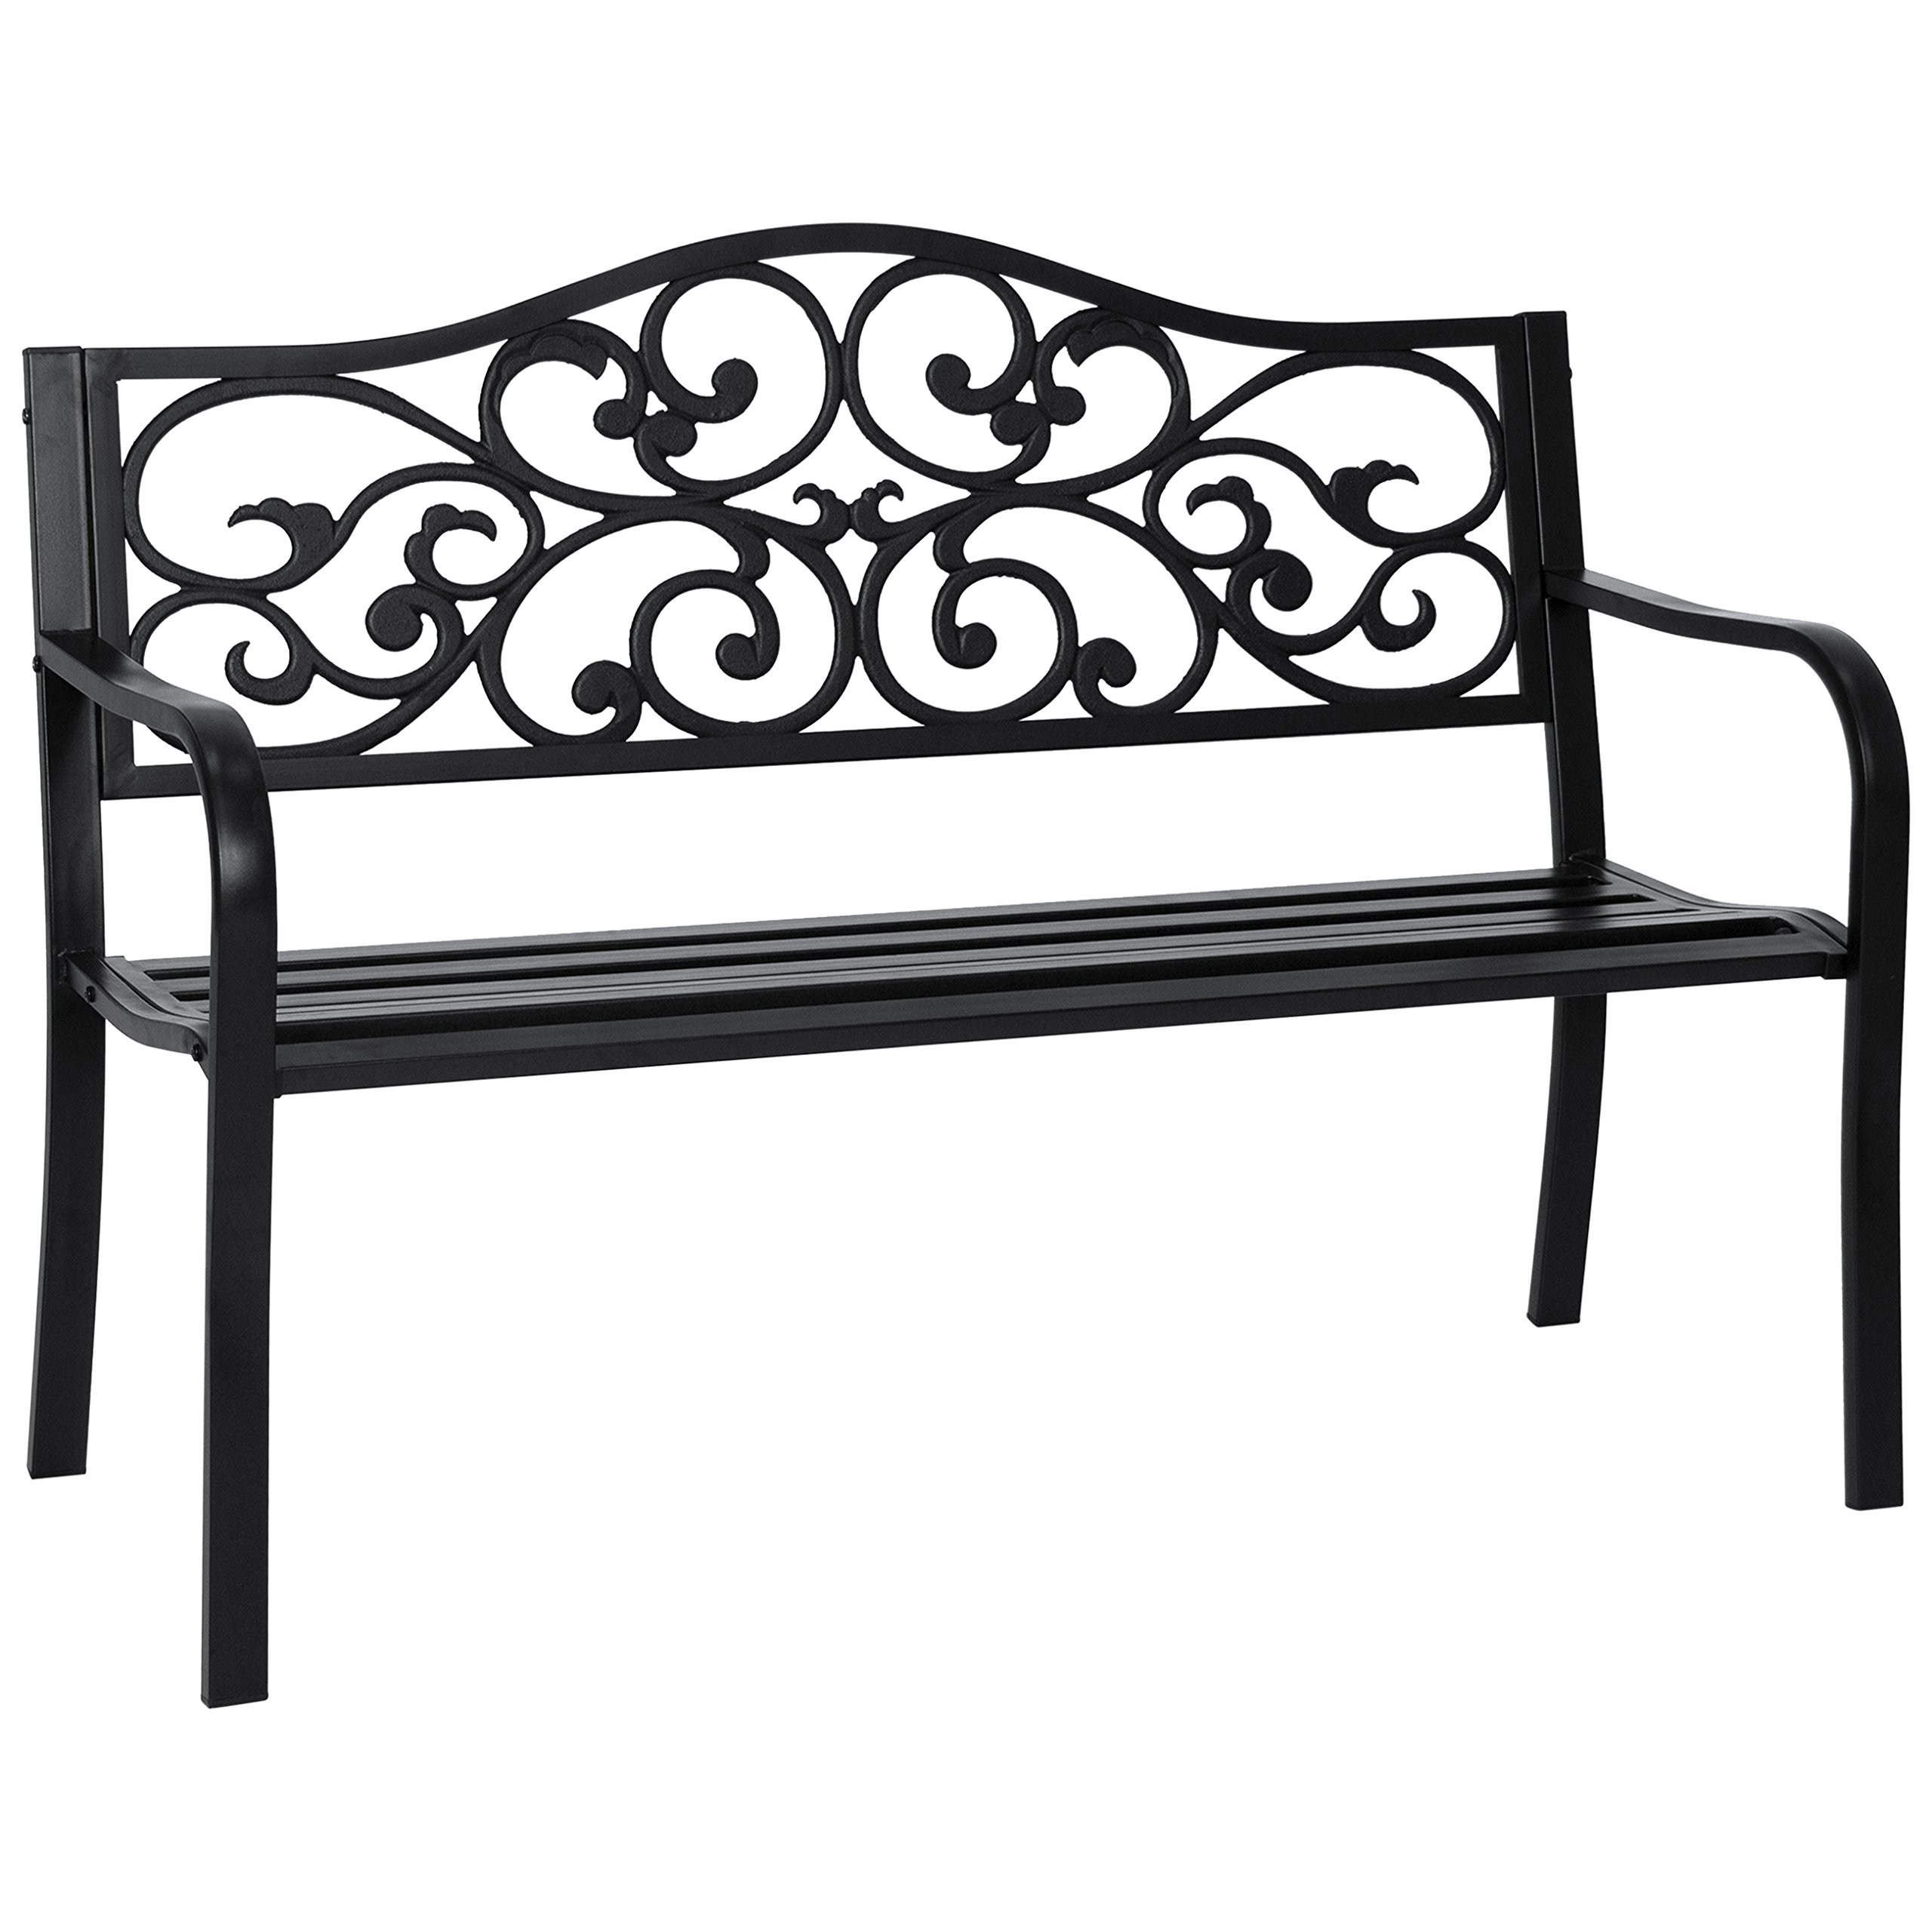 Best Choice Products Classic Metal Patio Garden Bench w/Decorative Floral Scroll Design - Black